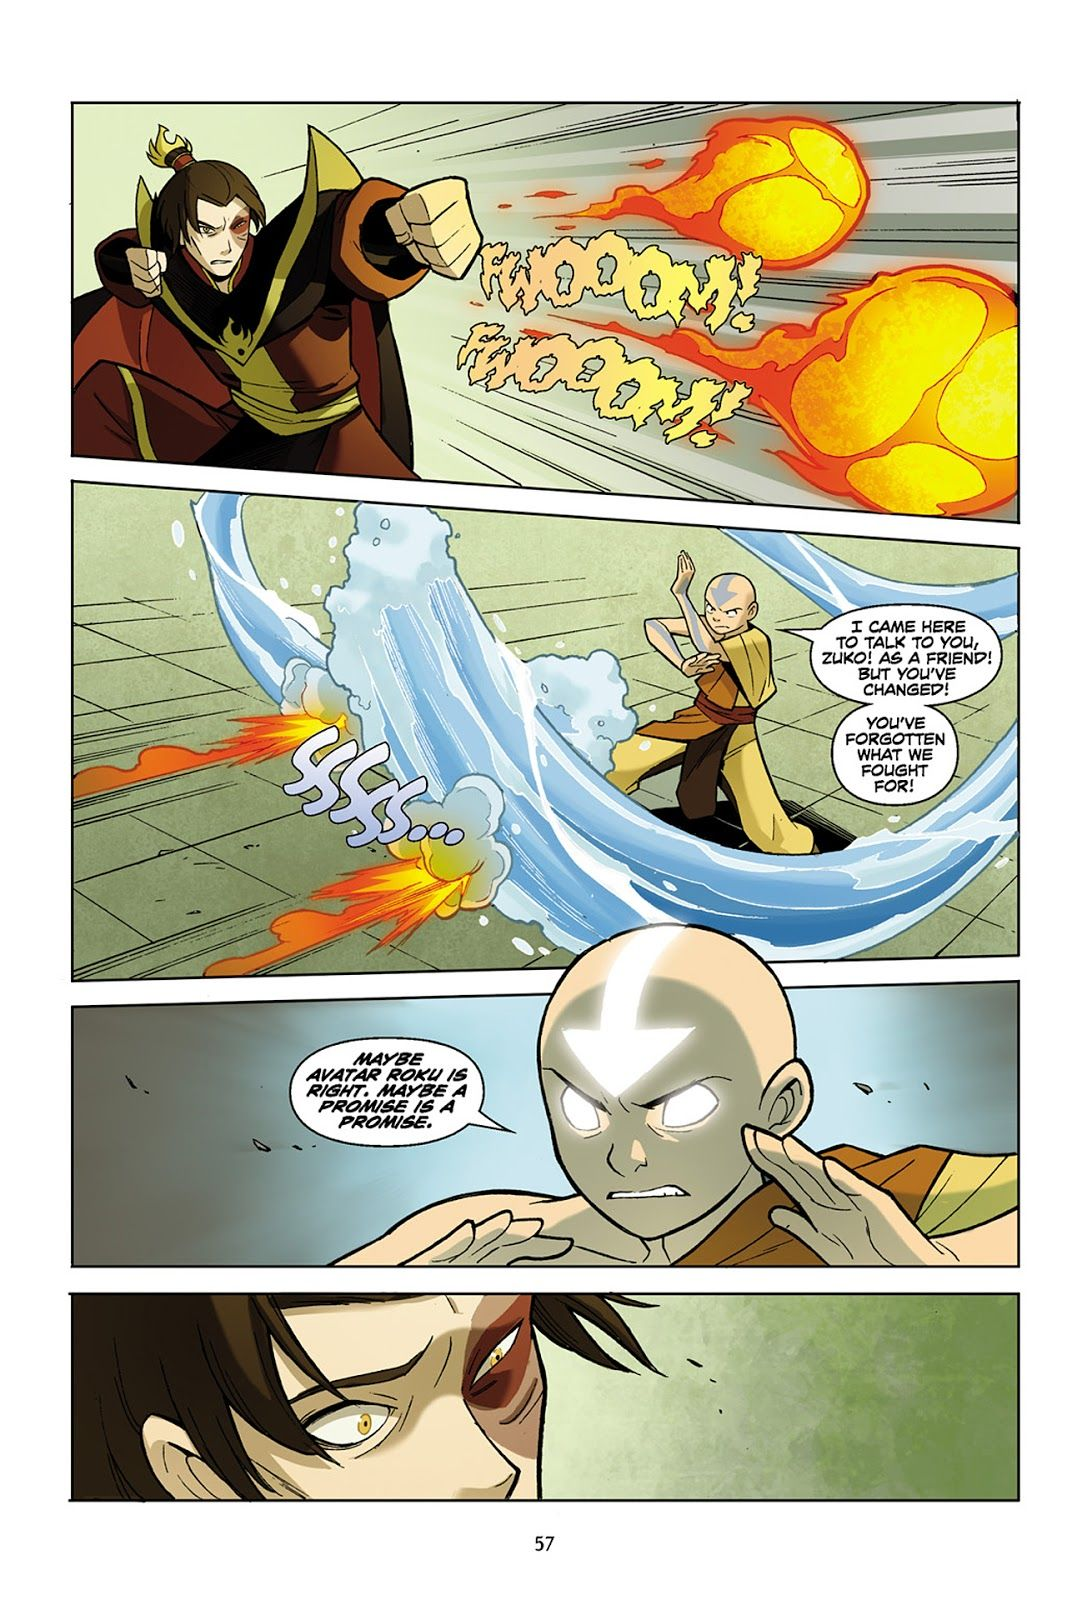 Nickelodeon Avatar The Last Airbender The Promise Part 1 Read Nickelodeon Avatar The Last Airbender The Prom Avatar Airbender The Last Airbender Avatar